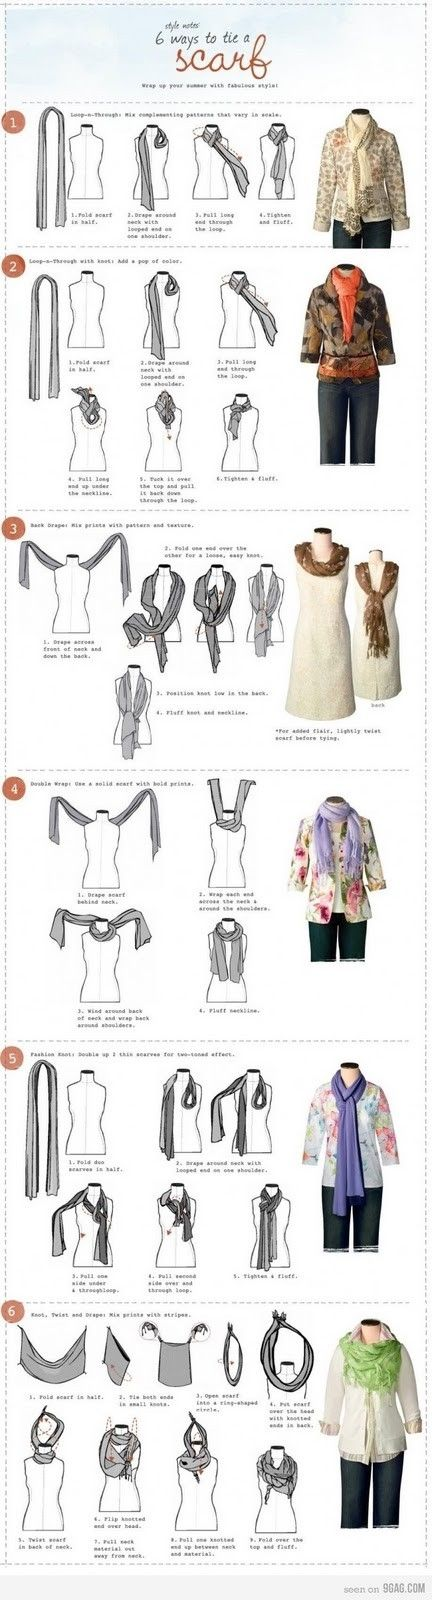 Exactly what I needed. Instructions for tying a scarf!